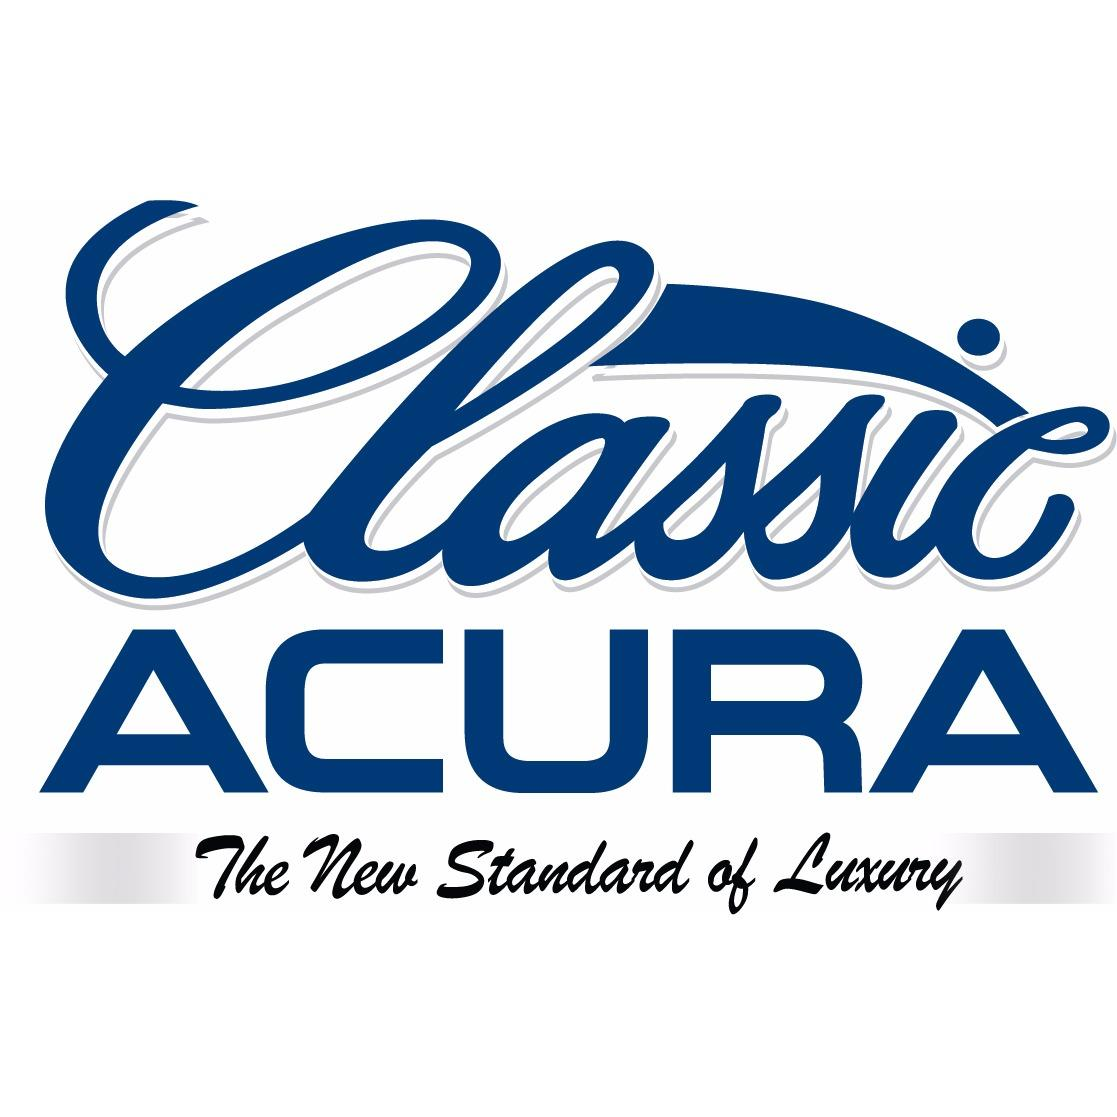 Classic Acura In Beaumont, TX 77702